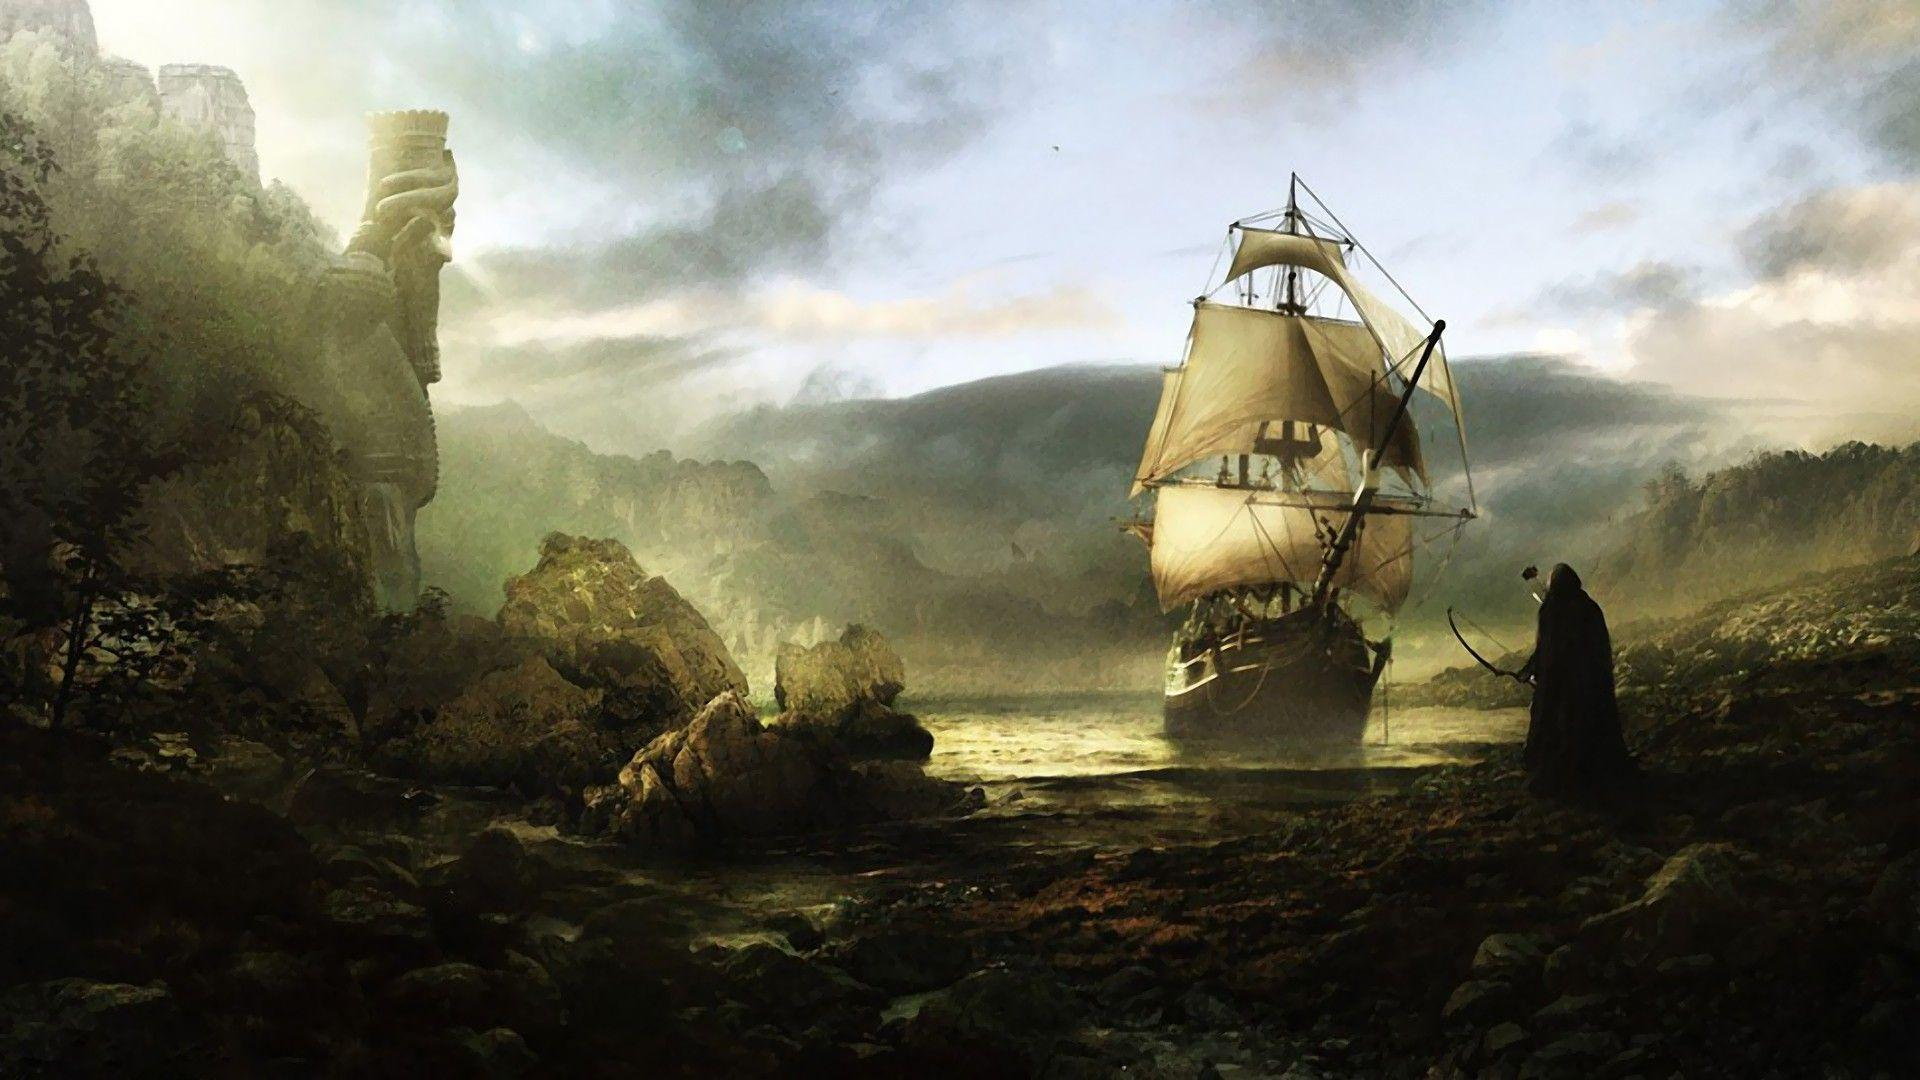 Old Ship Wallpapers - Wallpaper Cave